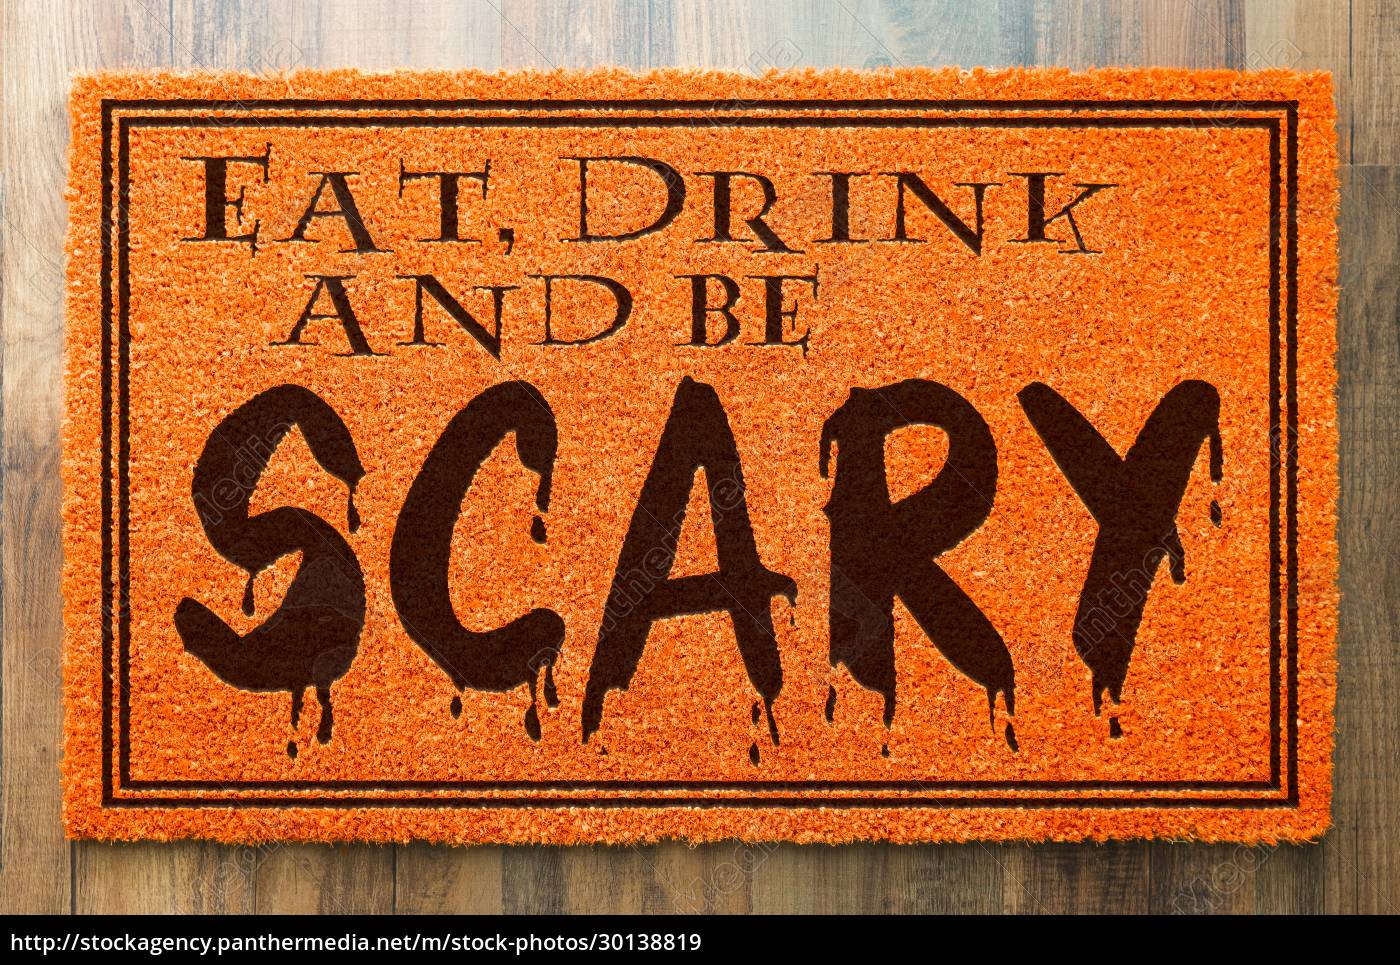 eat, , drink, and, be, scary, halloween - 30138819